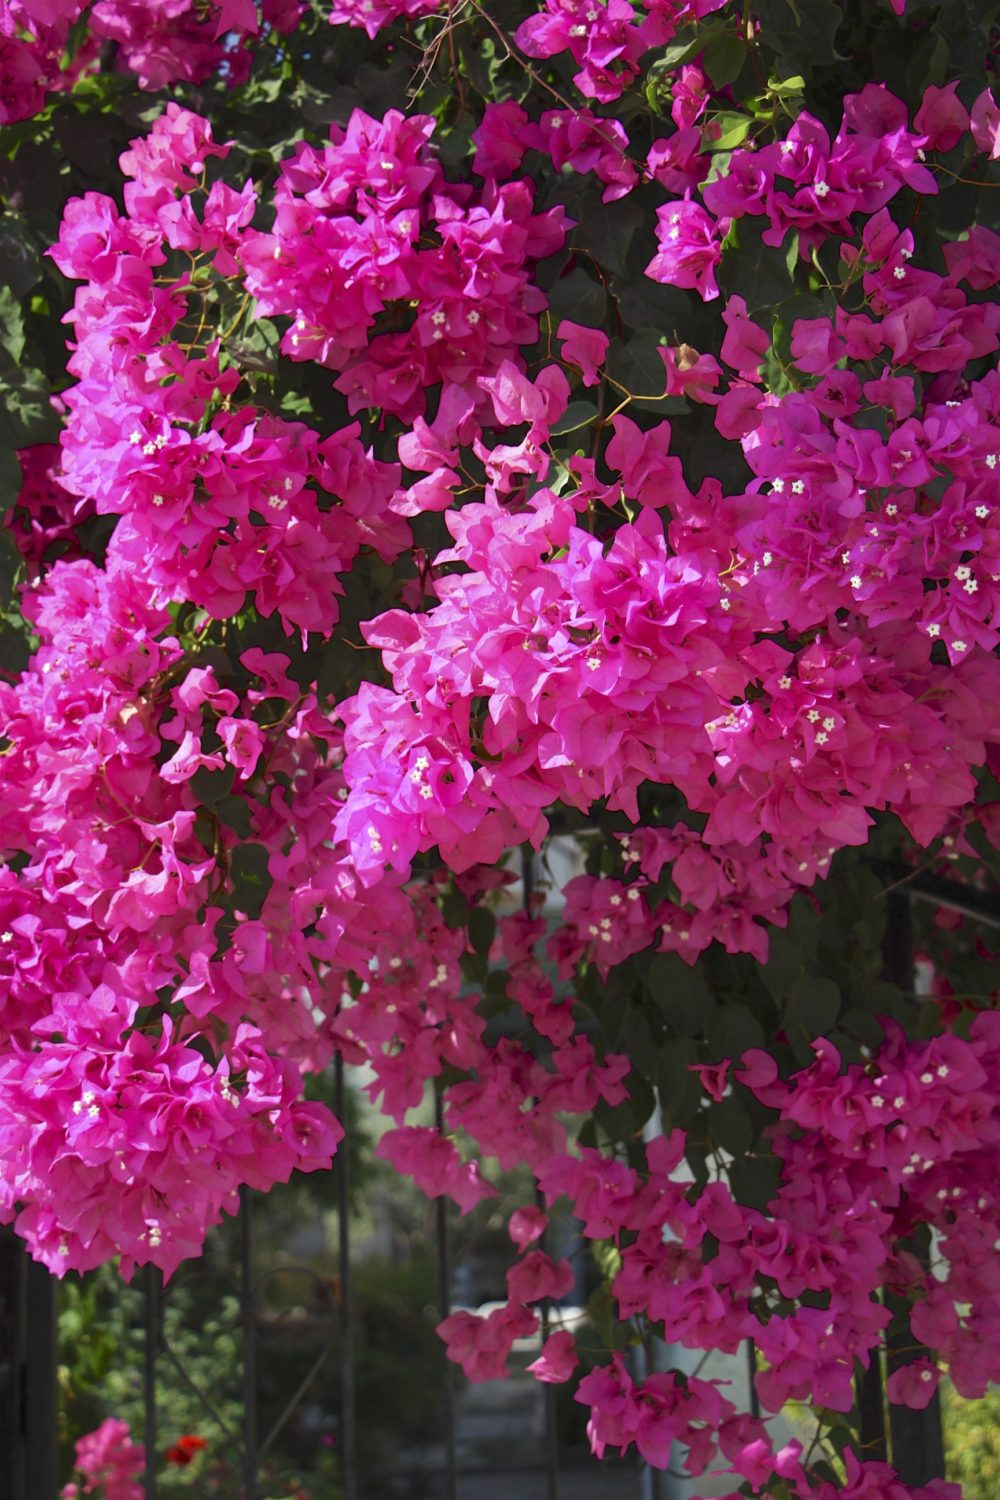 Bougainvillea growing over a gateway